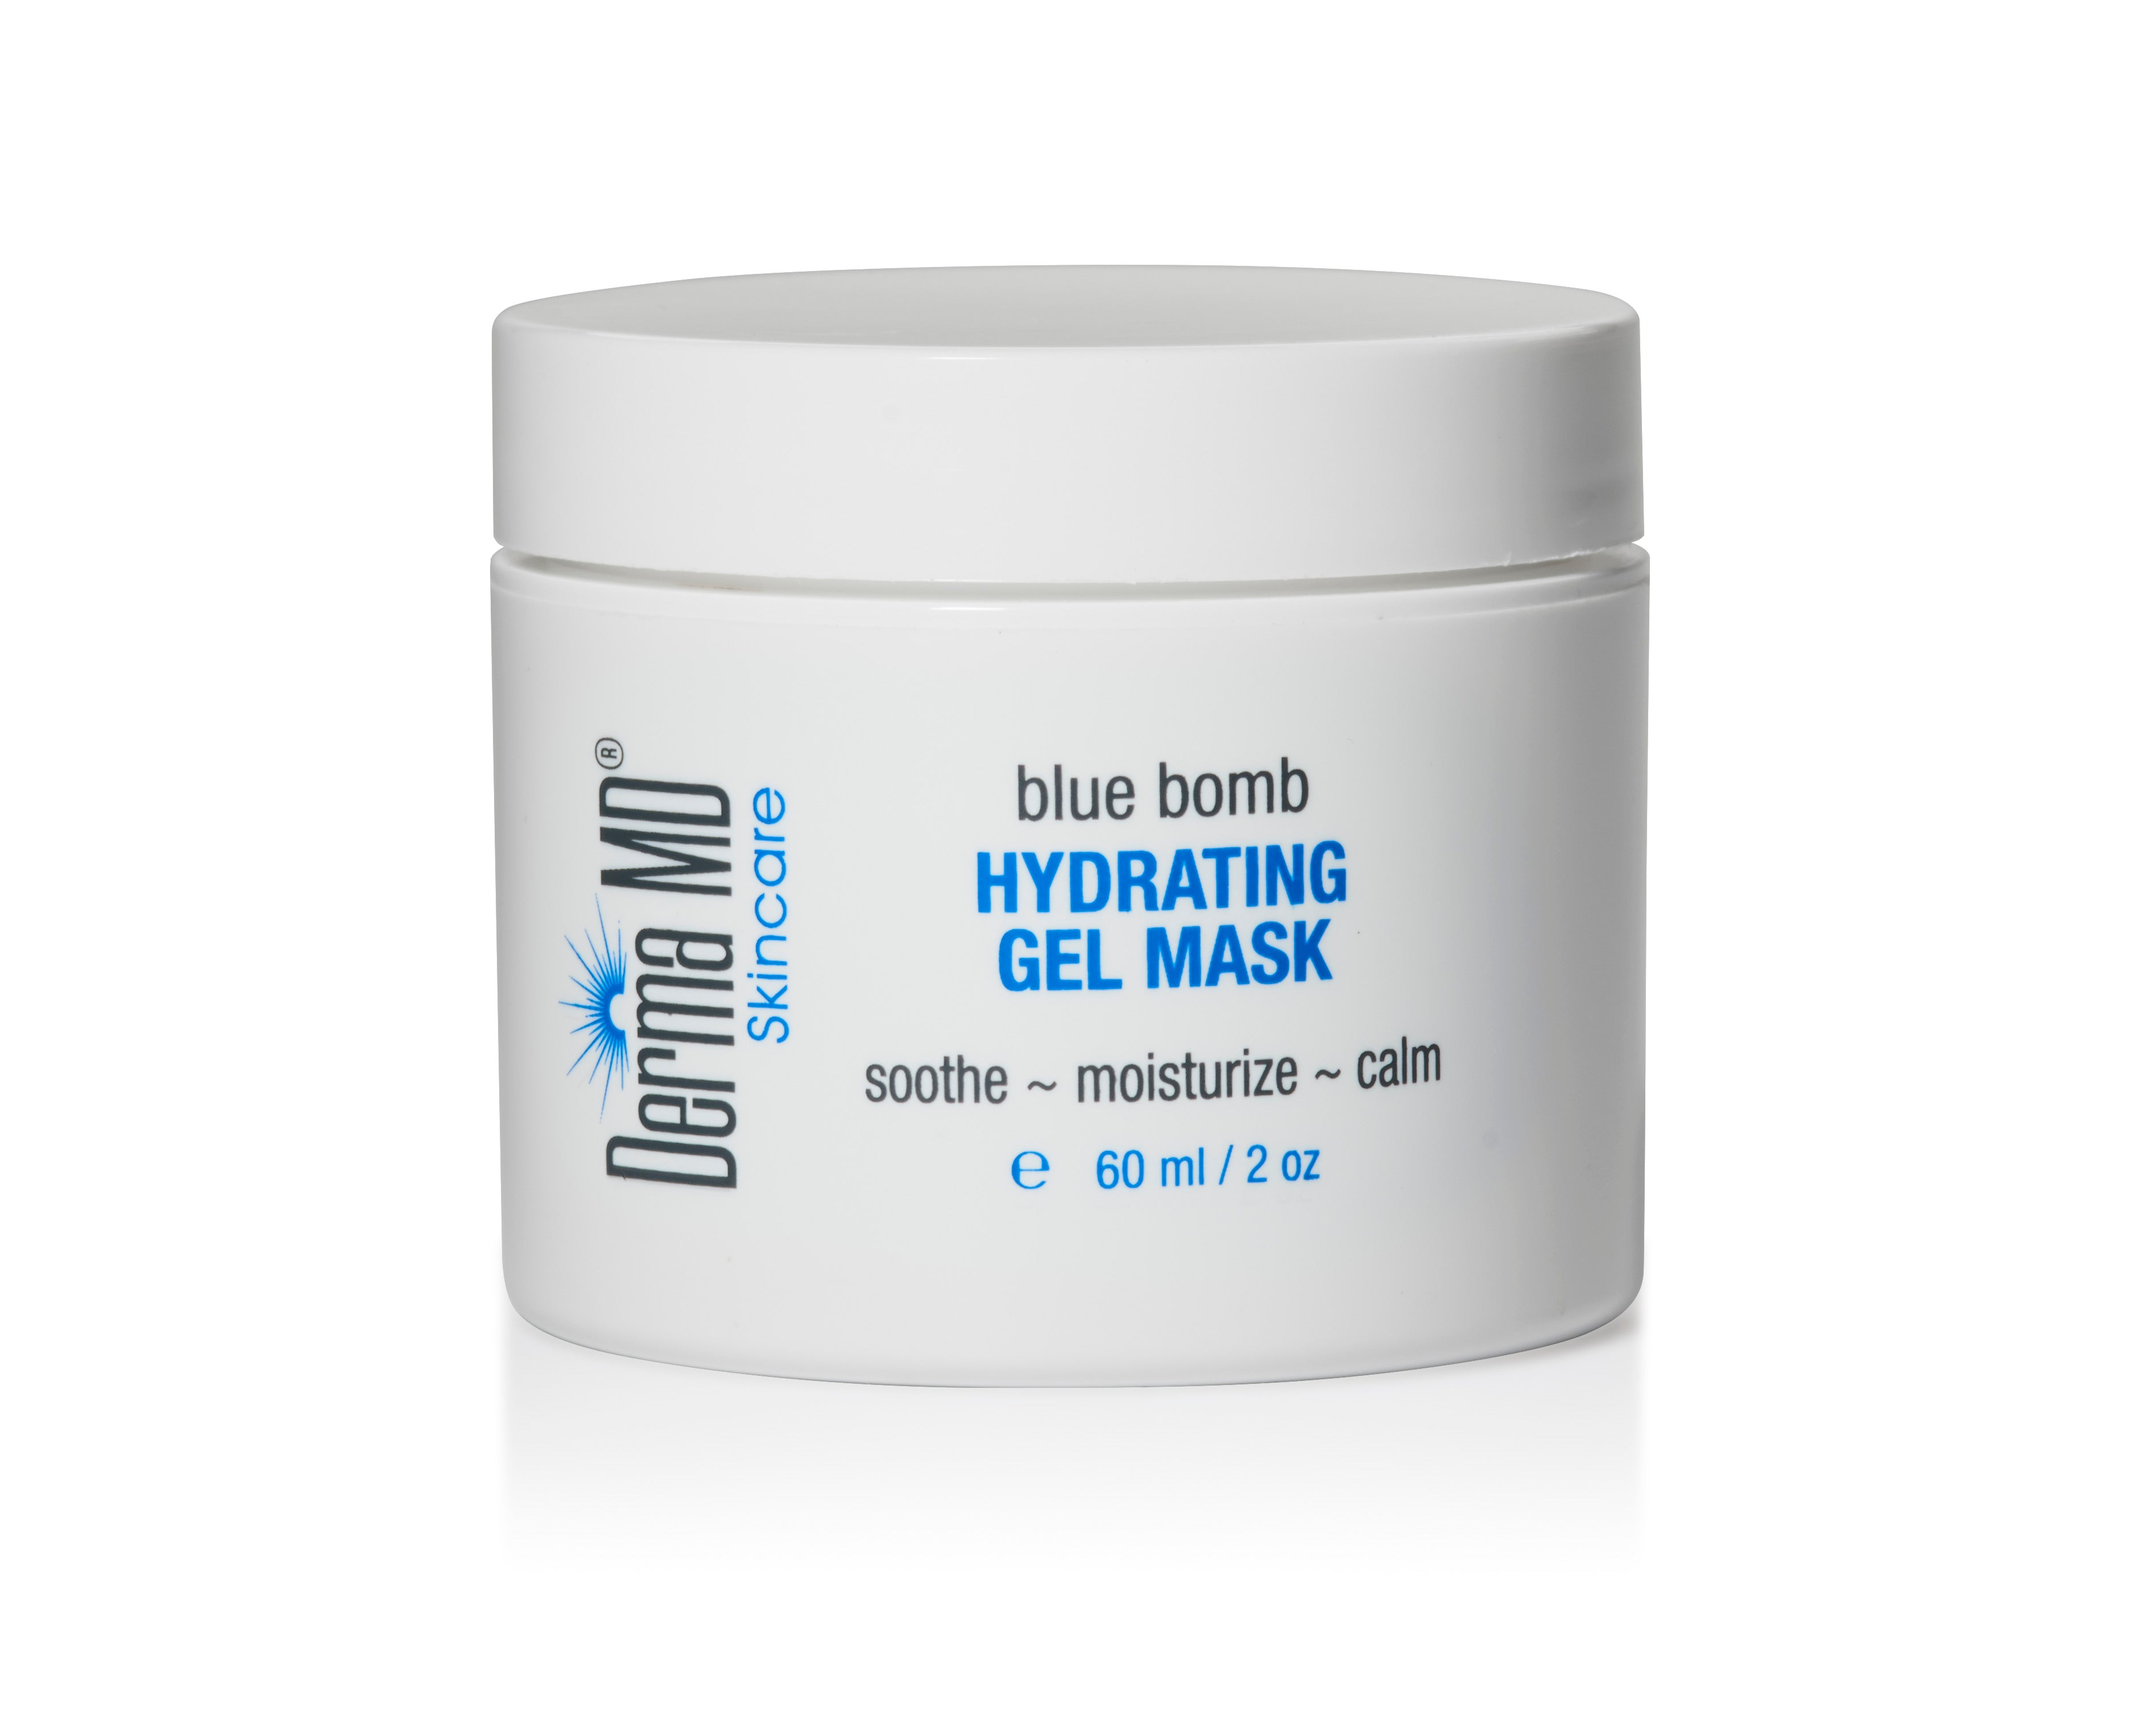 BLUE BOMB Hydrating Gel Mask